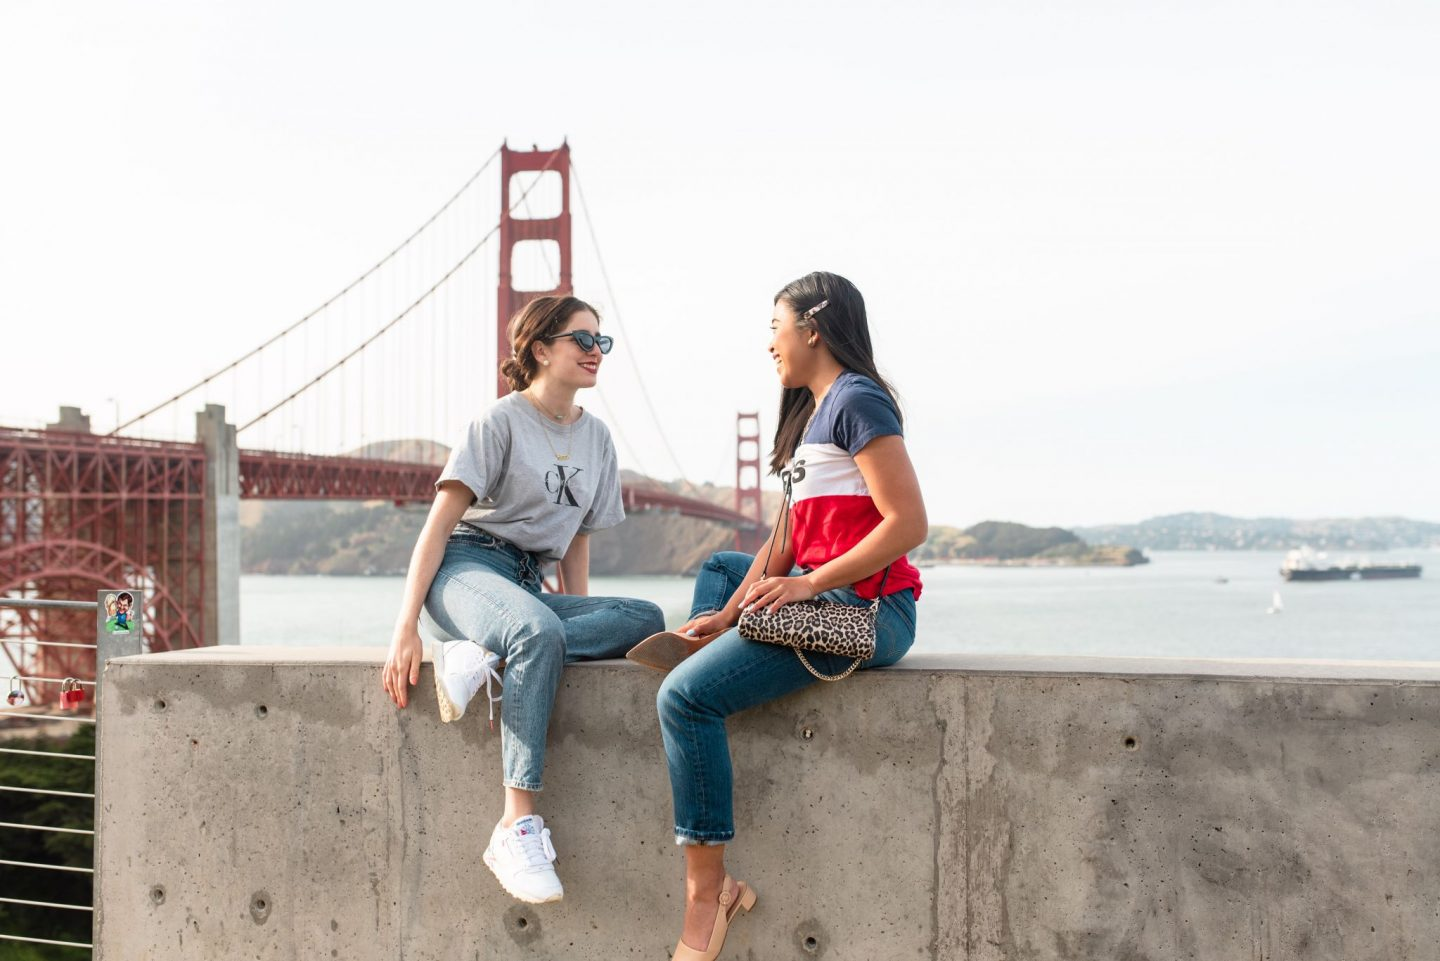 Golden Gate Bridge San Francisco - Best friend posing ideas - how to pose with friends